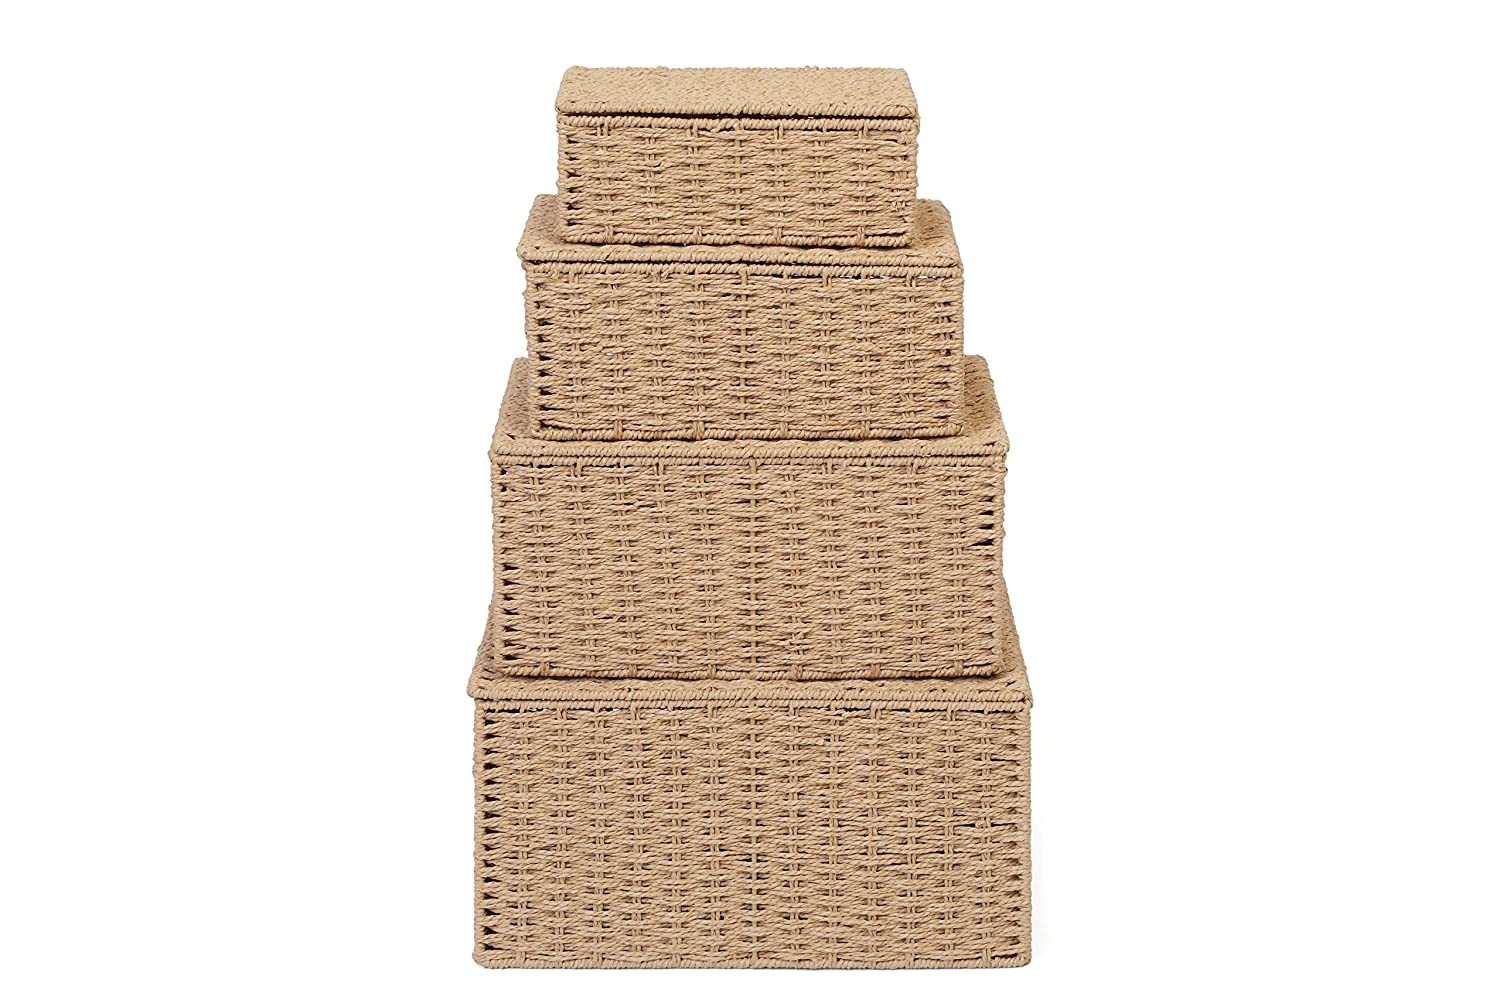 Natural ARPAN Basket Hamper Bin with Lid /& Insert Handles for Easy Carrying Large X Convenient Storage Organizer Box for Multi Purpose Small Medium